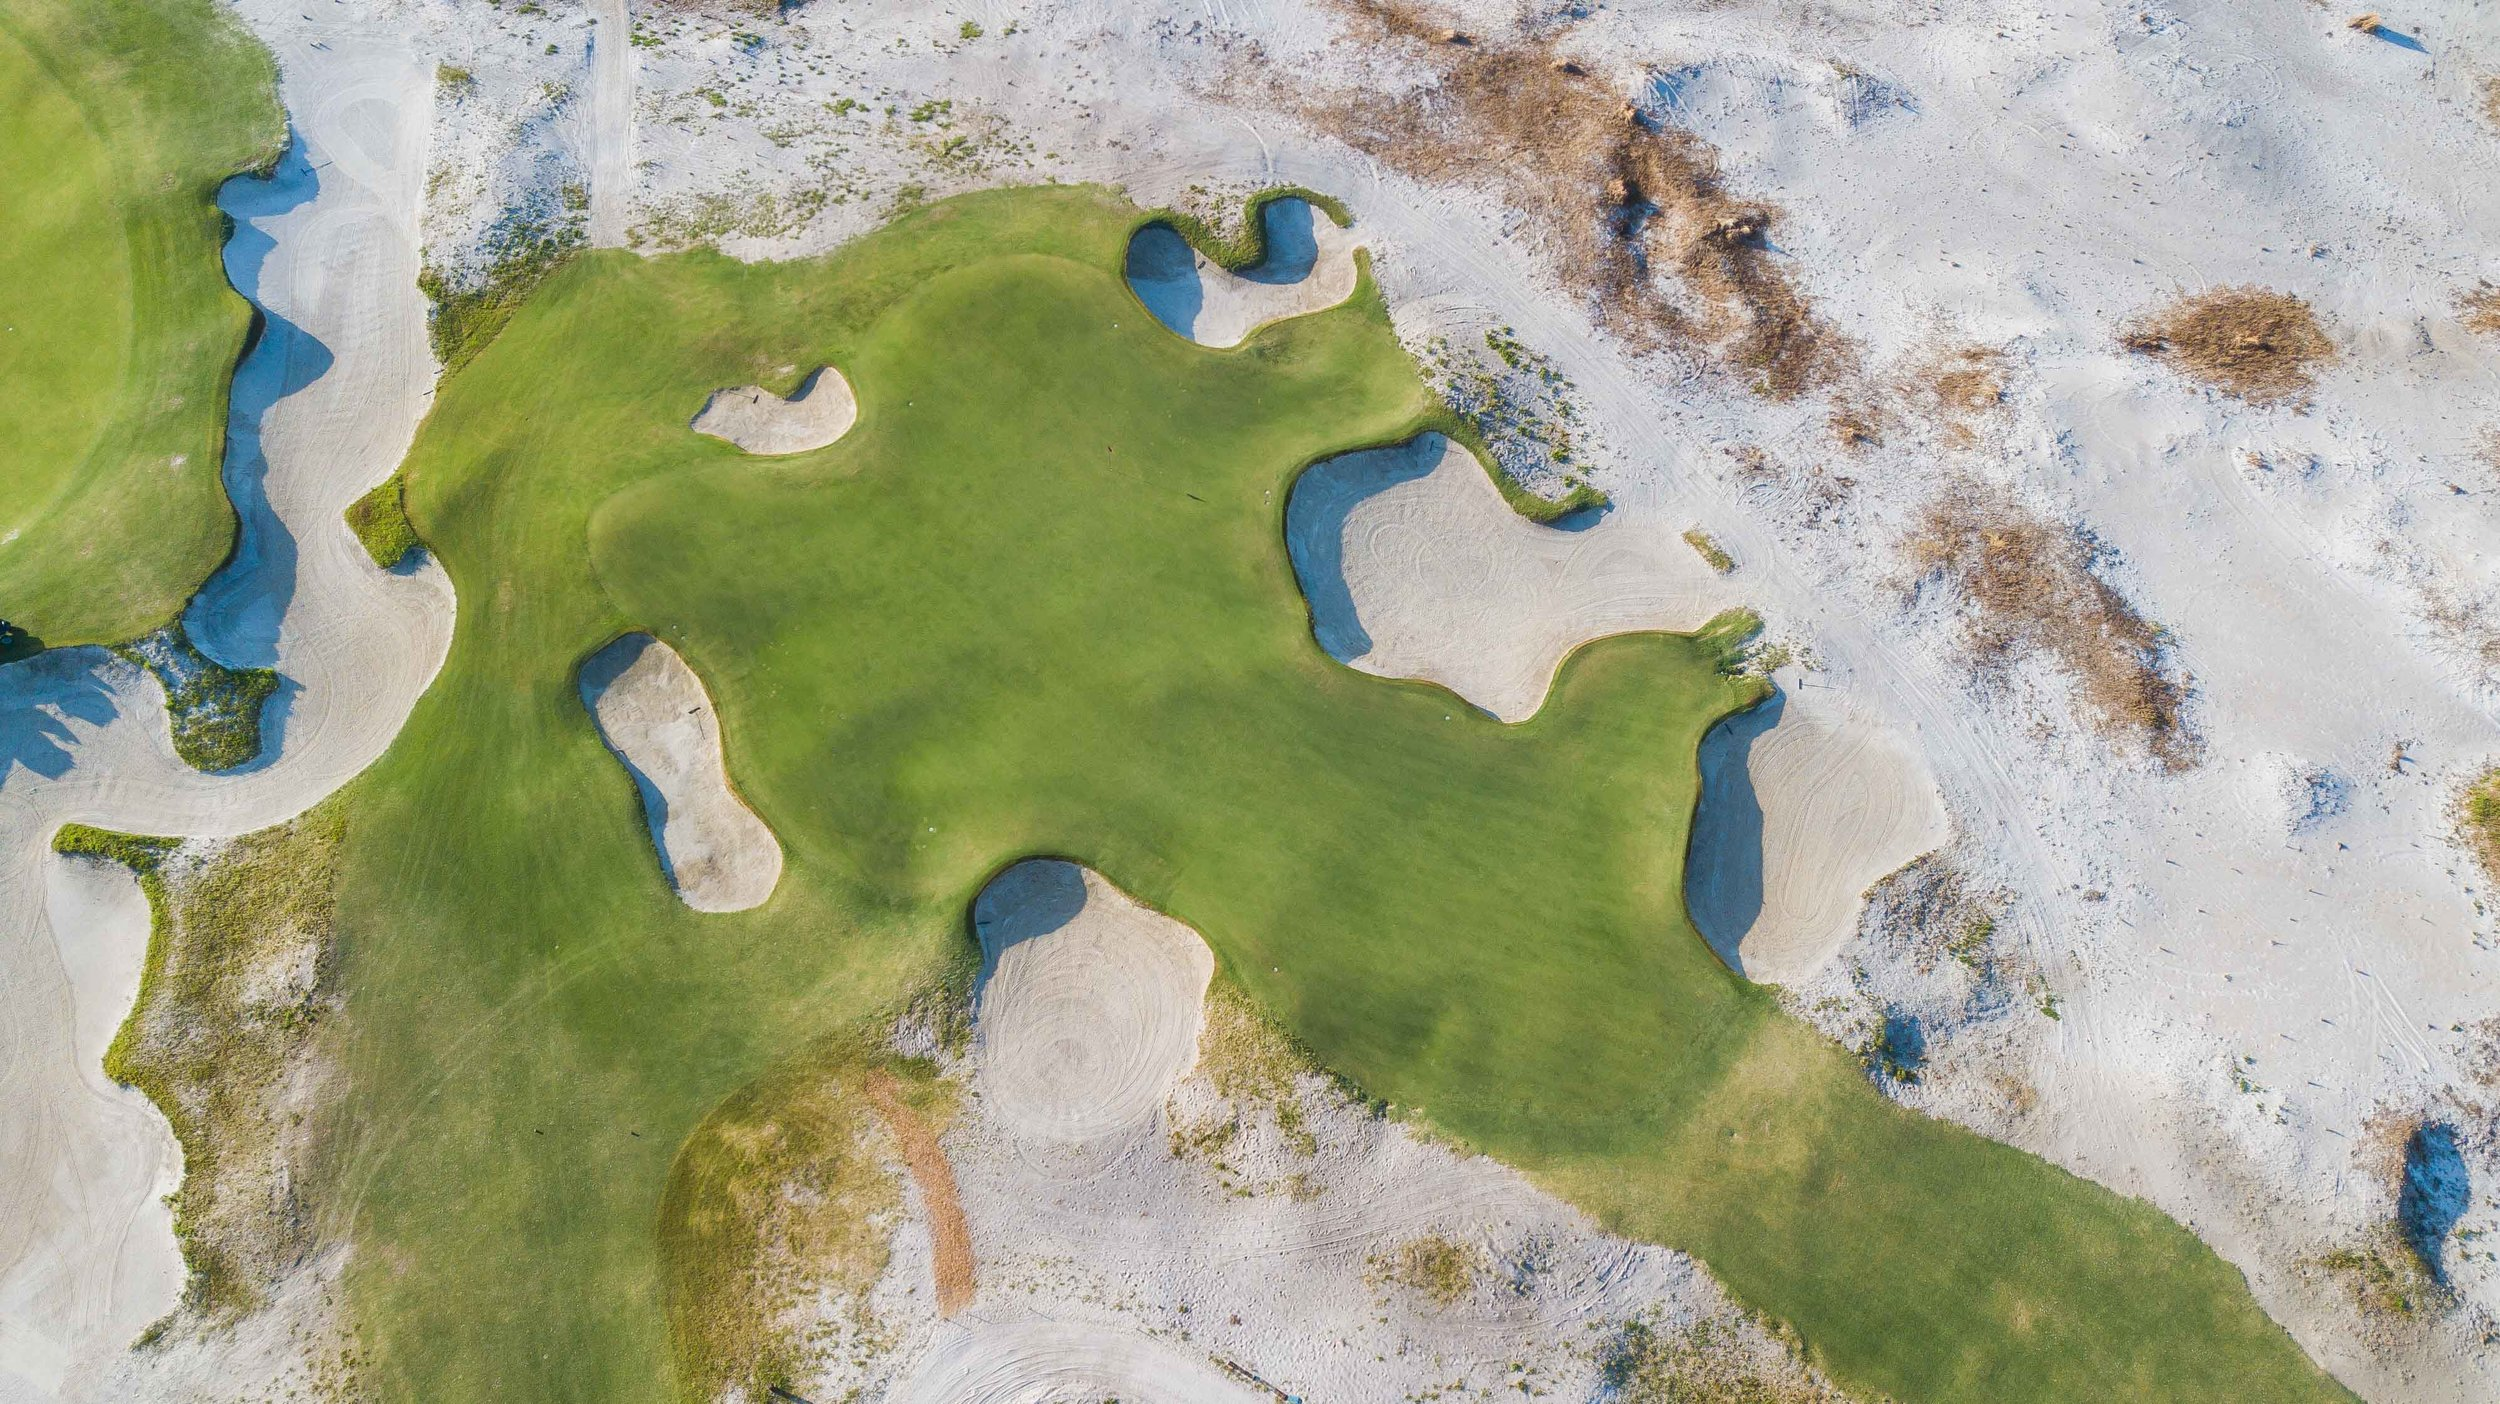 Gil Hanse's Black course at Streamsong